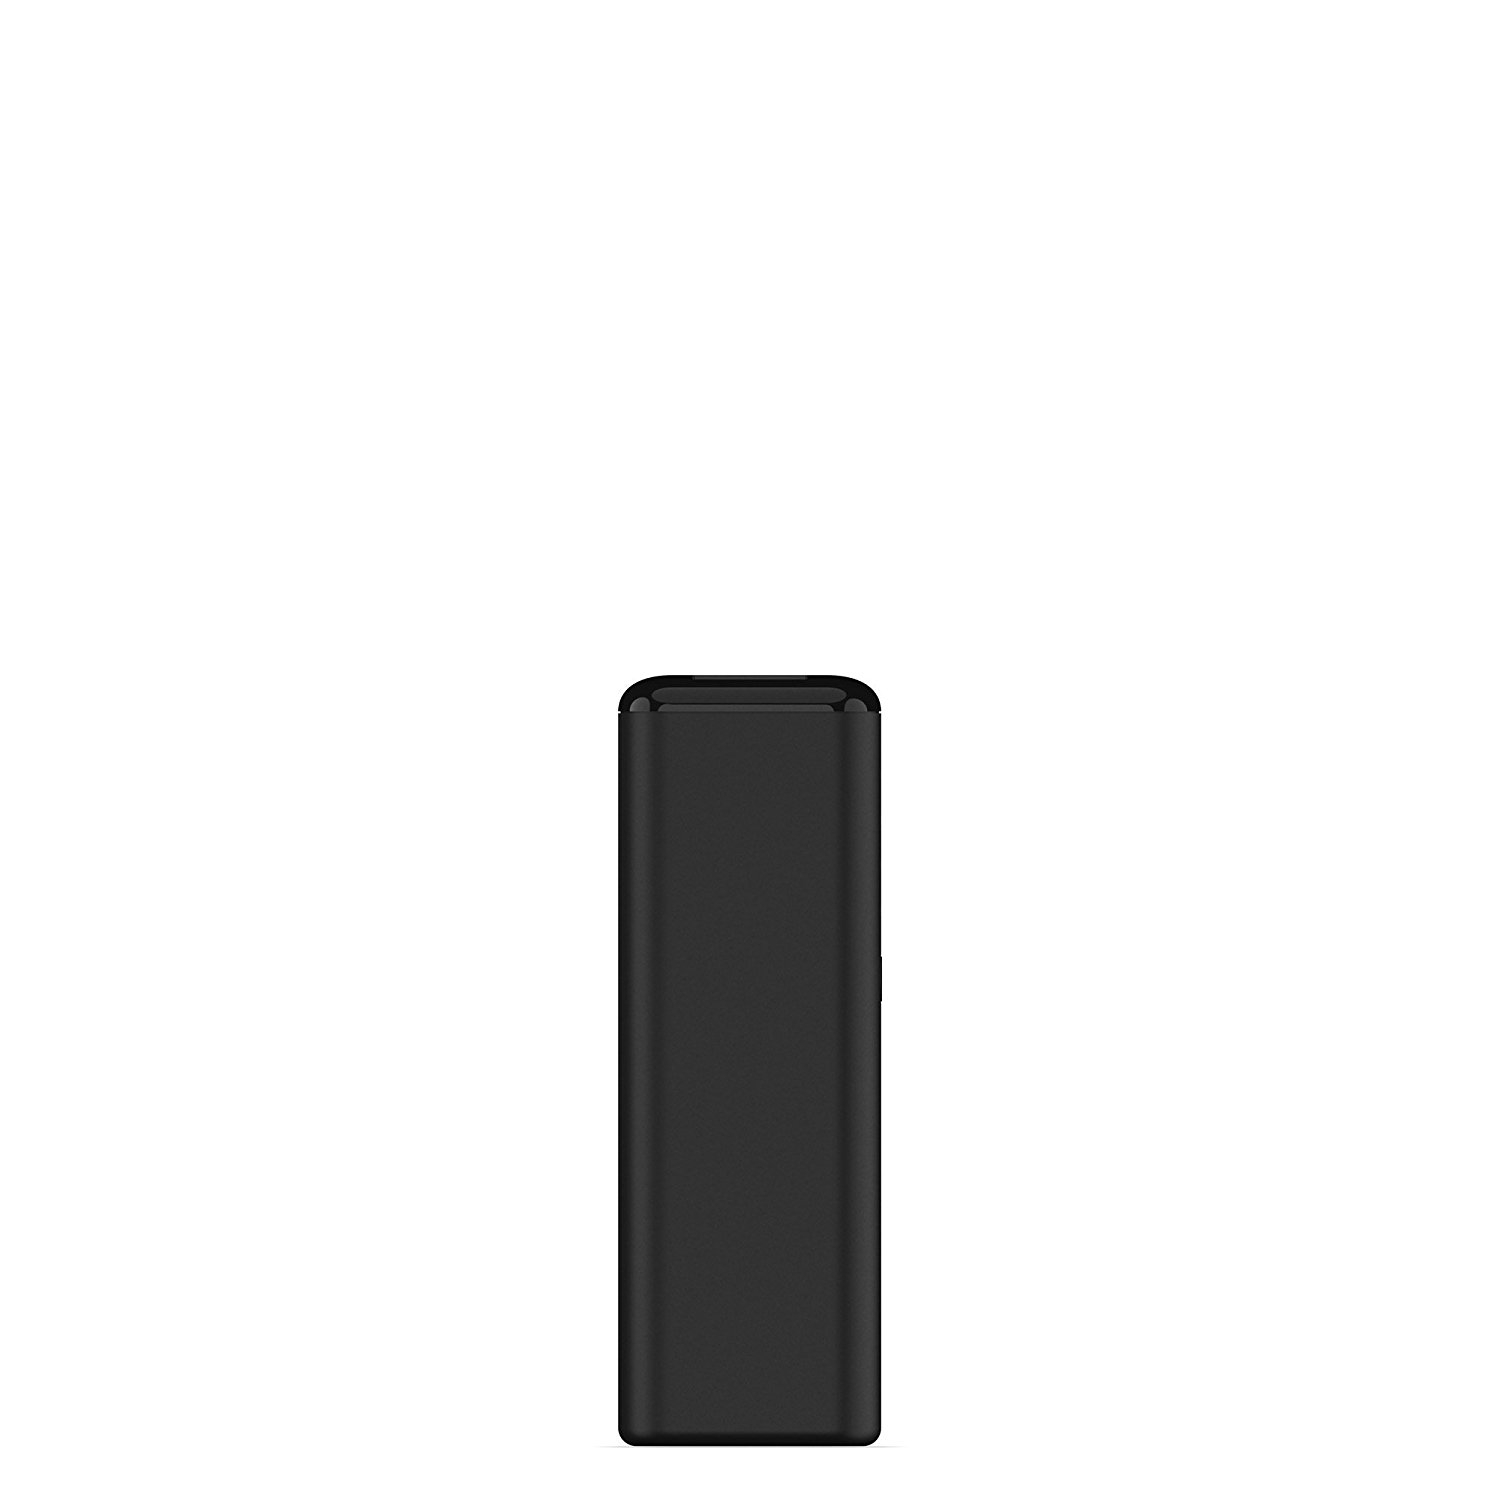 mophie boost mini power bank 2600 mah. Black Bedroom Furniture Sets. Home Design Ideas